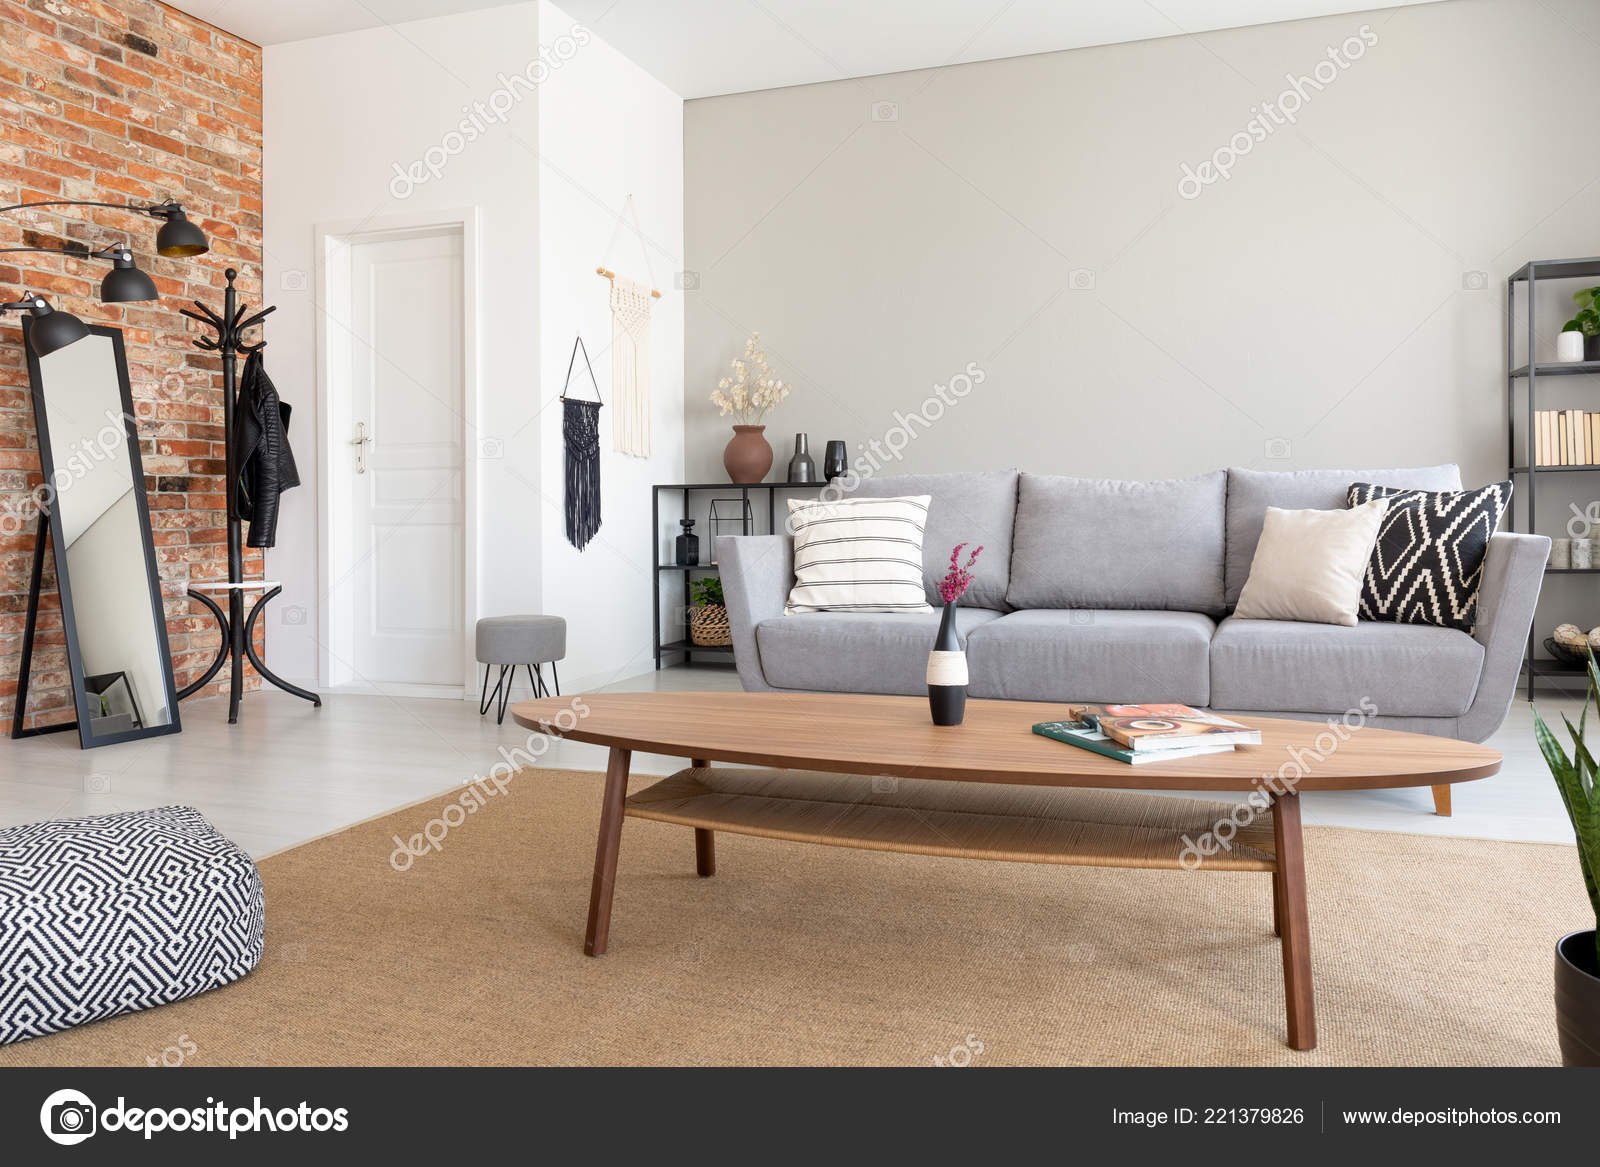 Living Room With Grey Sofa Wooden Table Middle Elegant Living Room Grey Sofa Metal Shelf